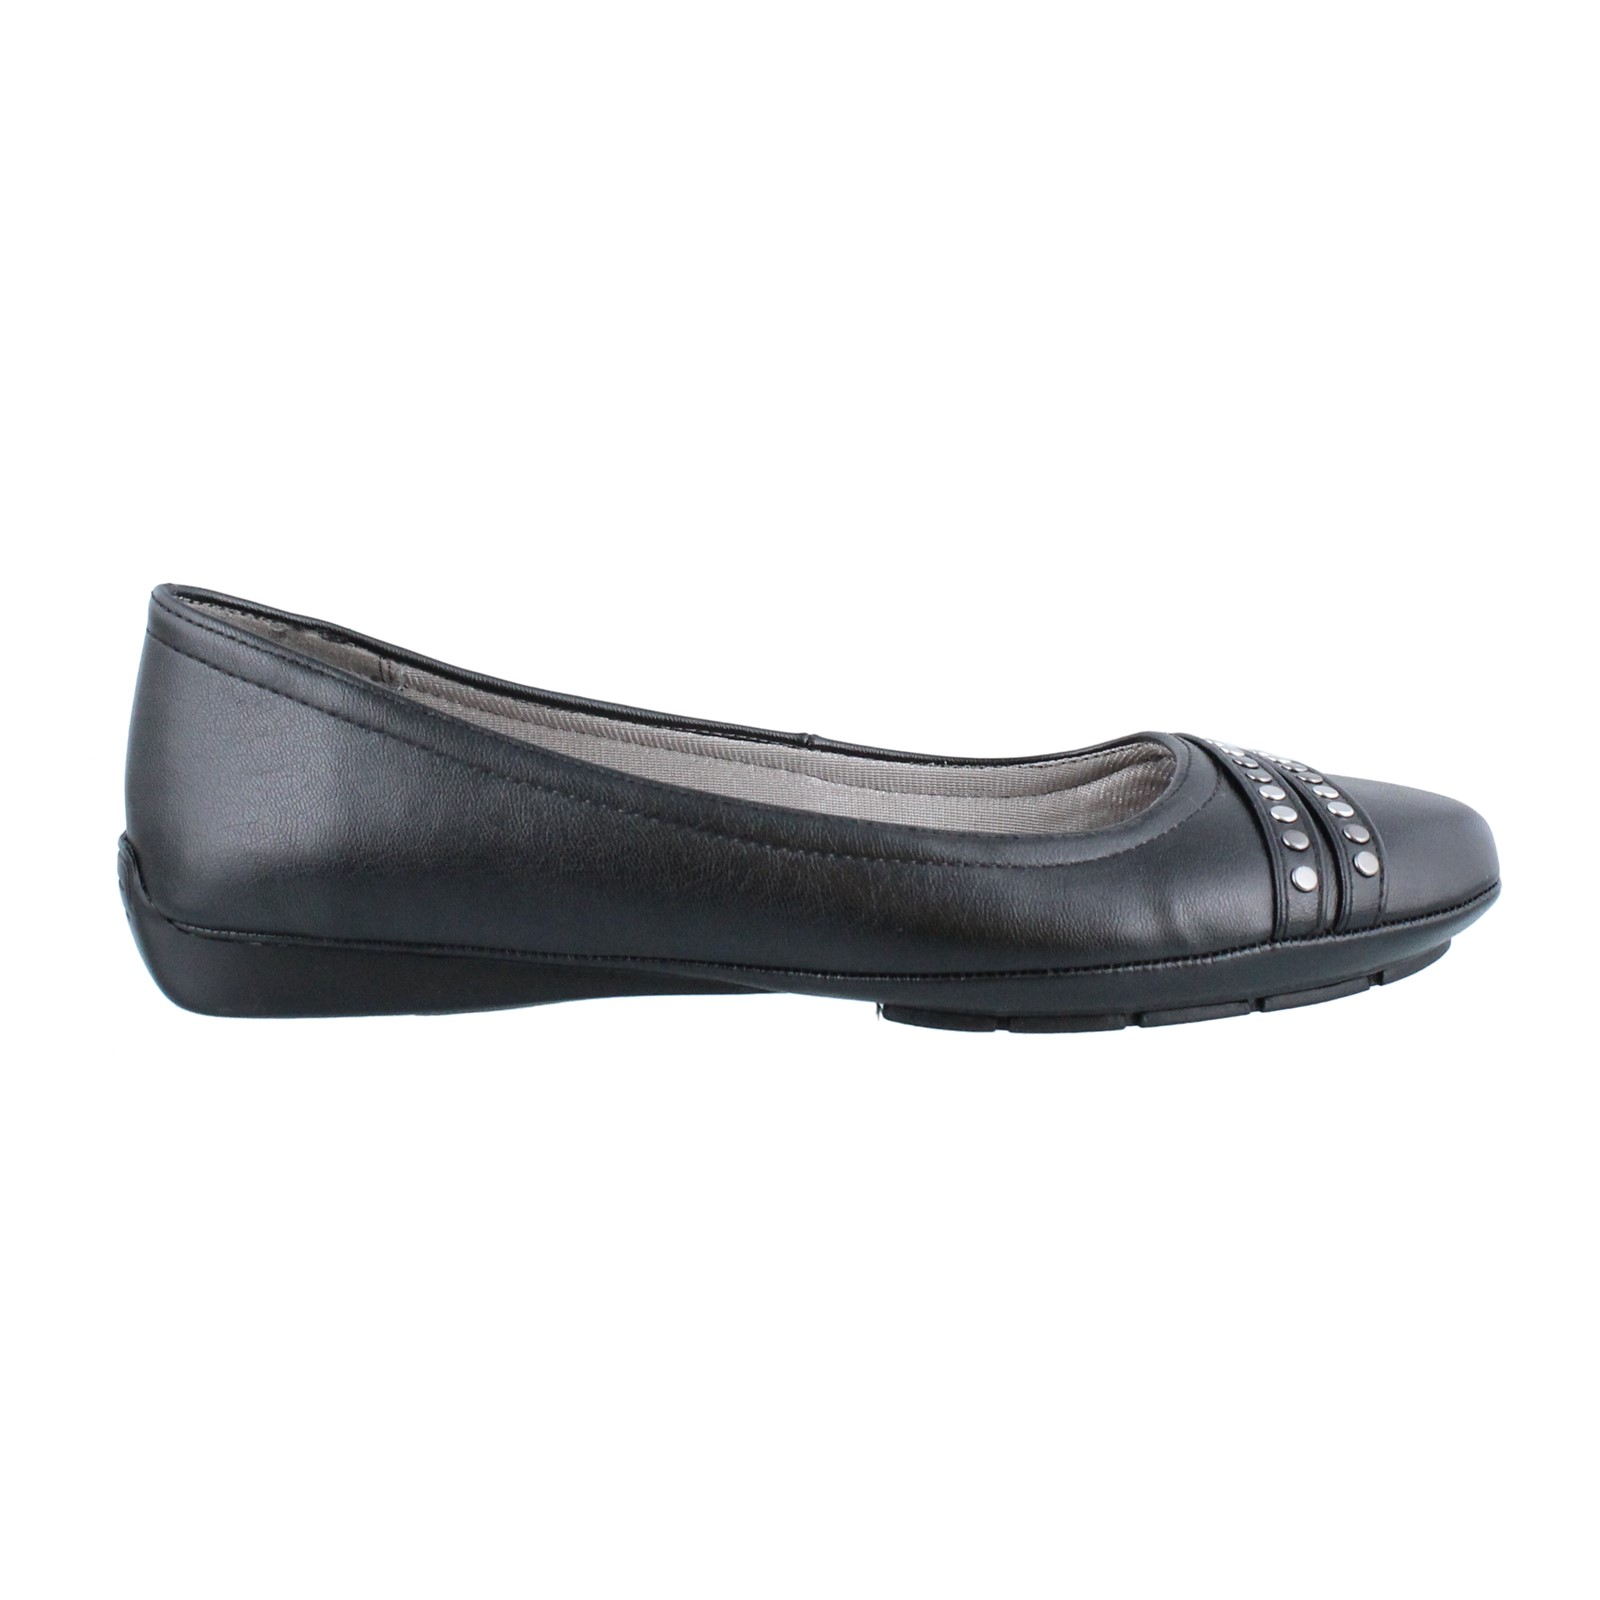 Women's Lifestride, Vibes Slip on Flats